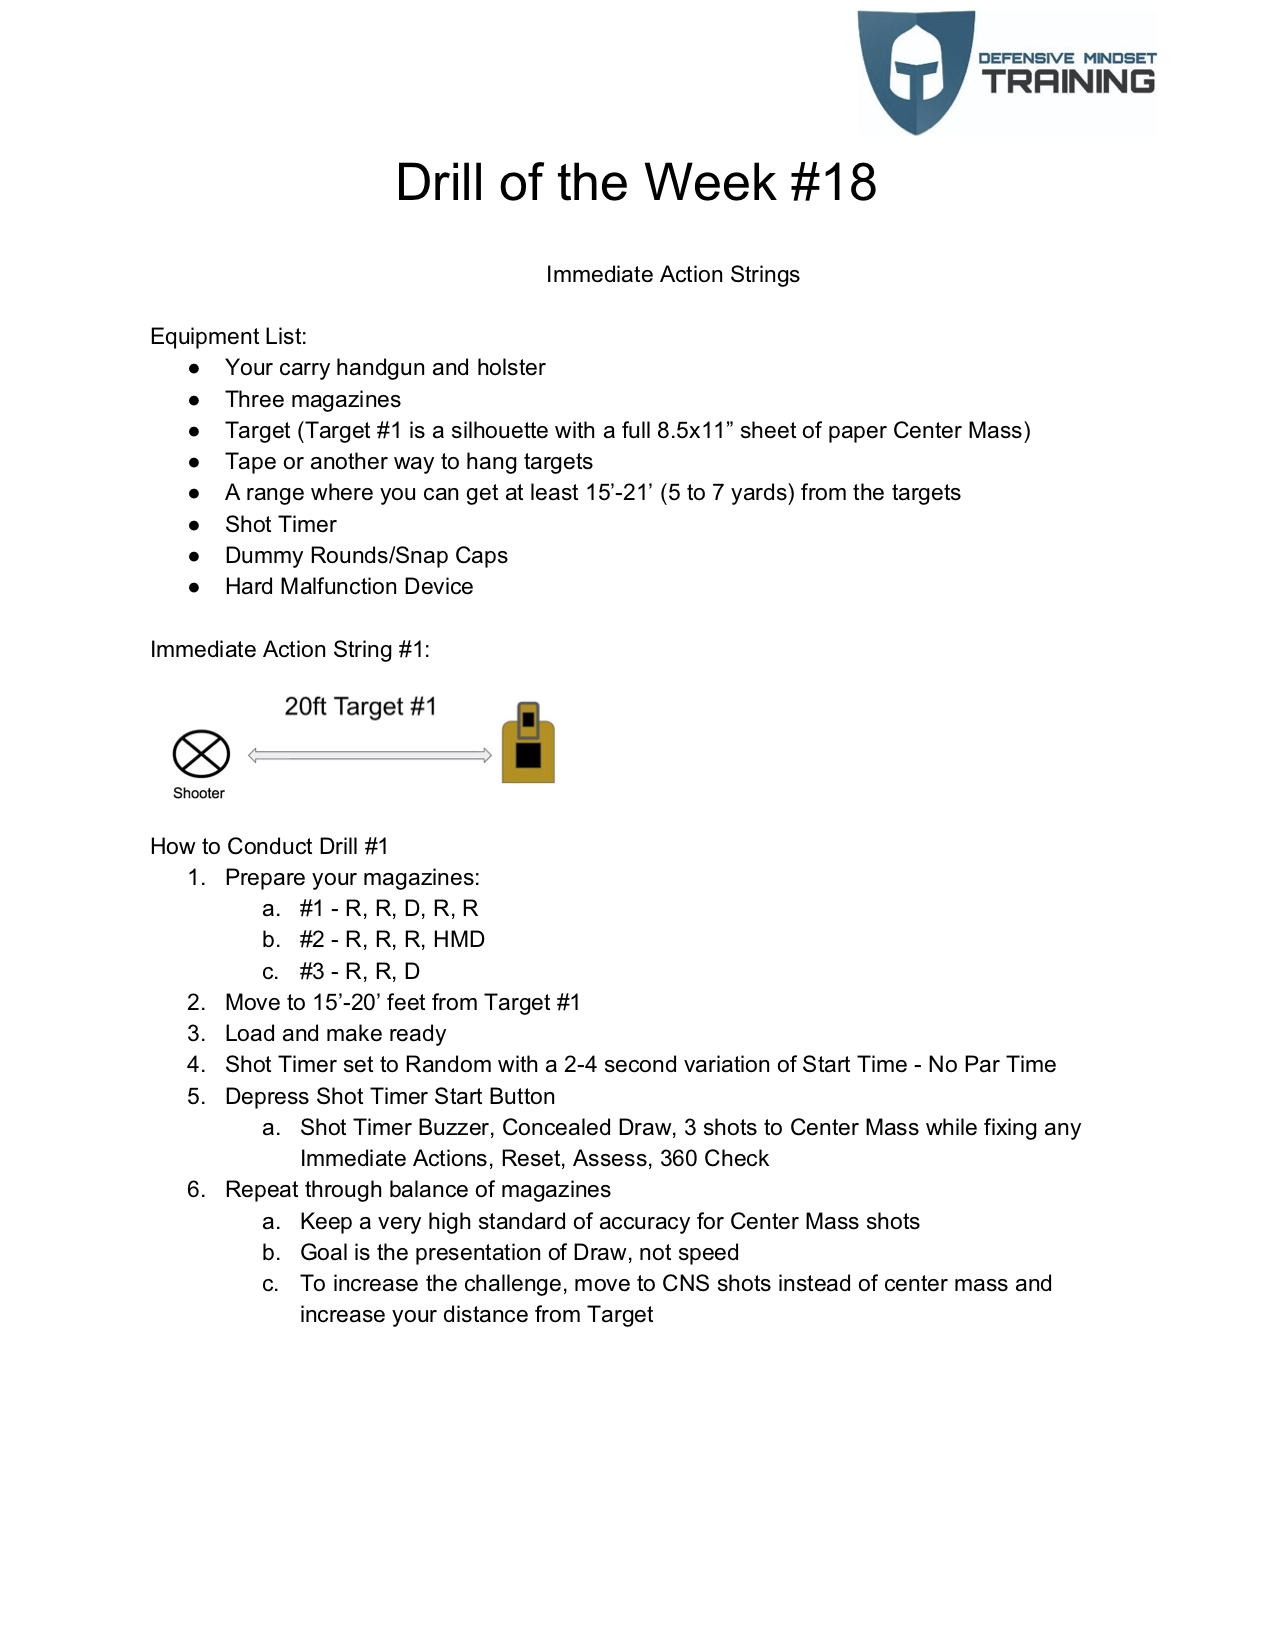 1 Drill of the Week #18.jpg